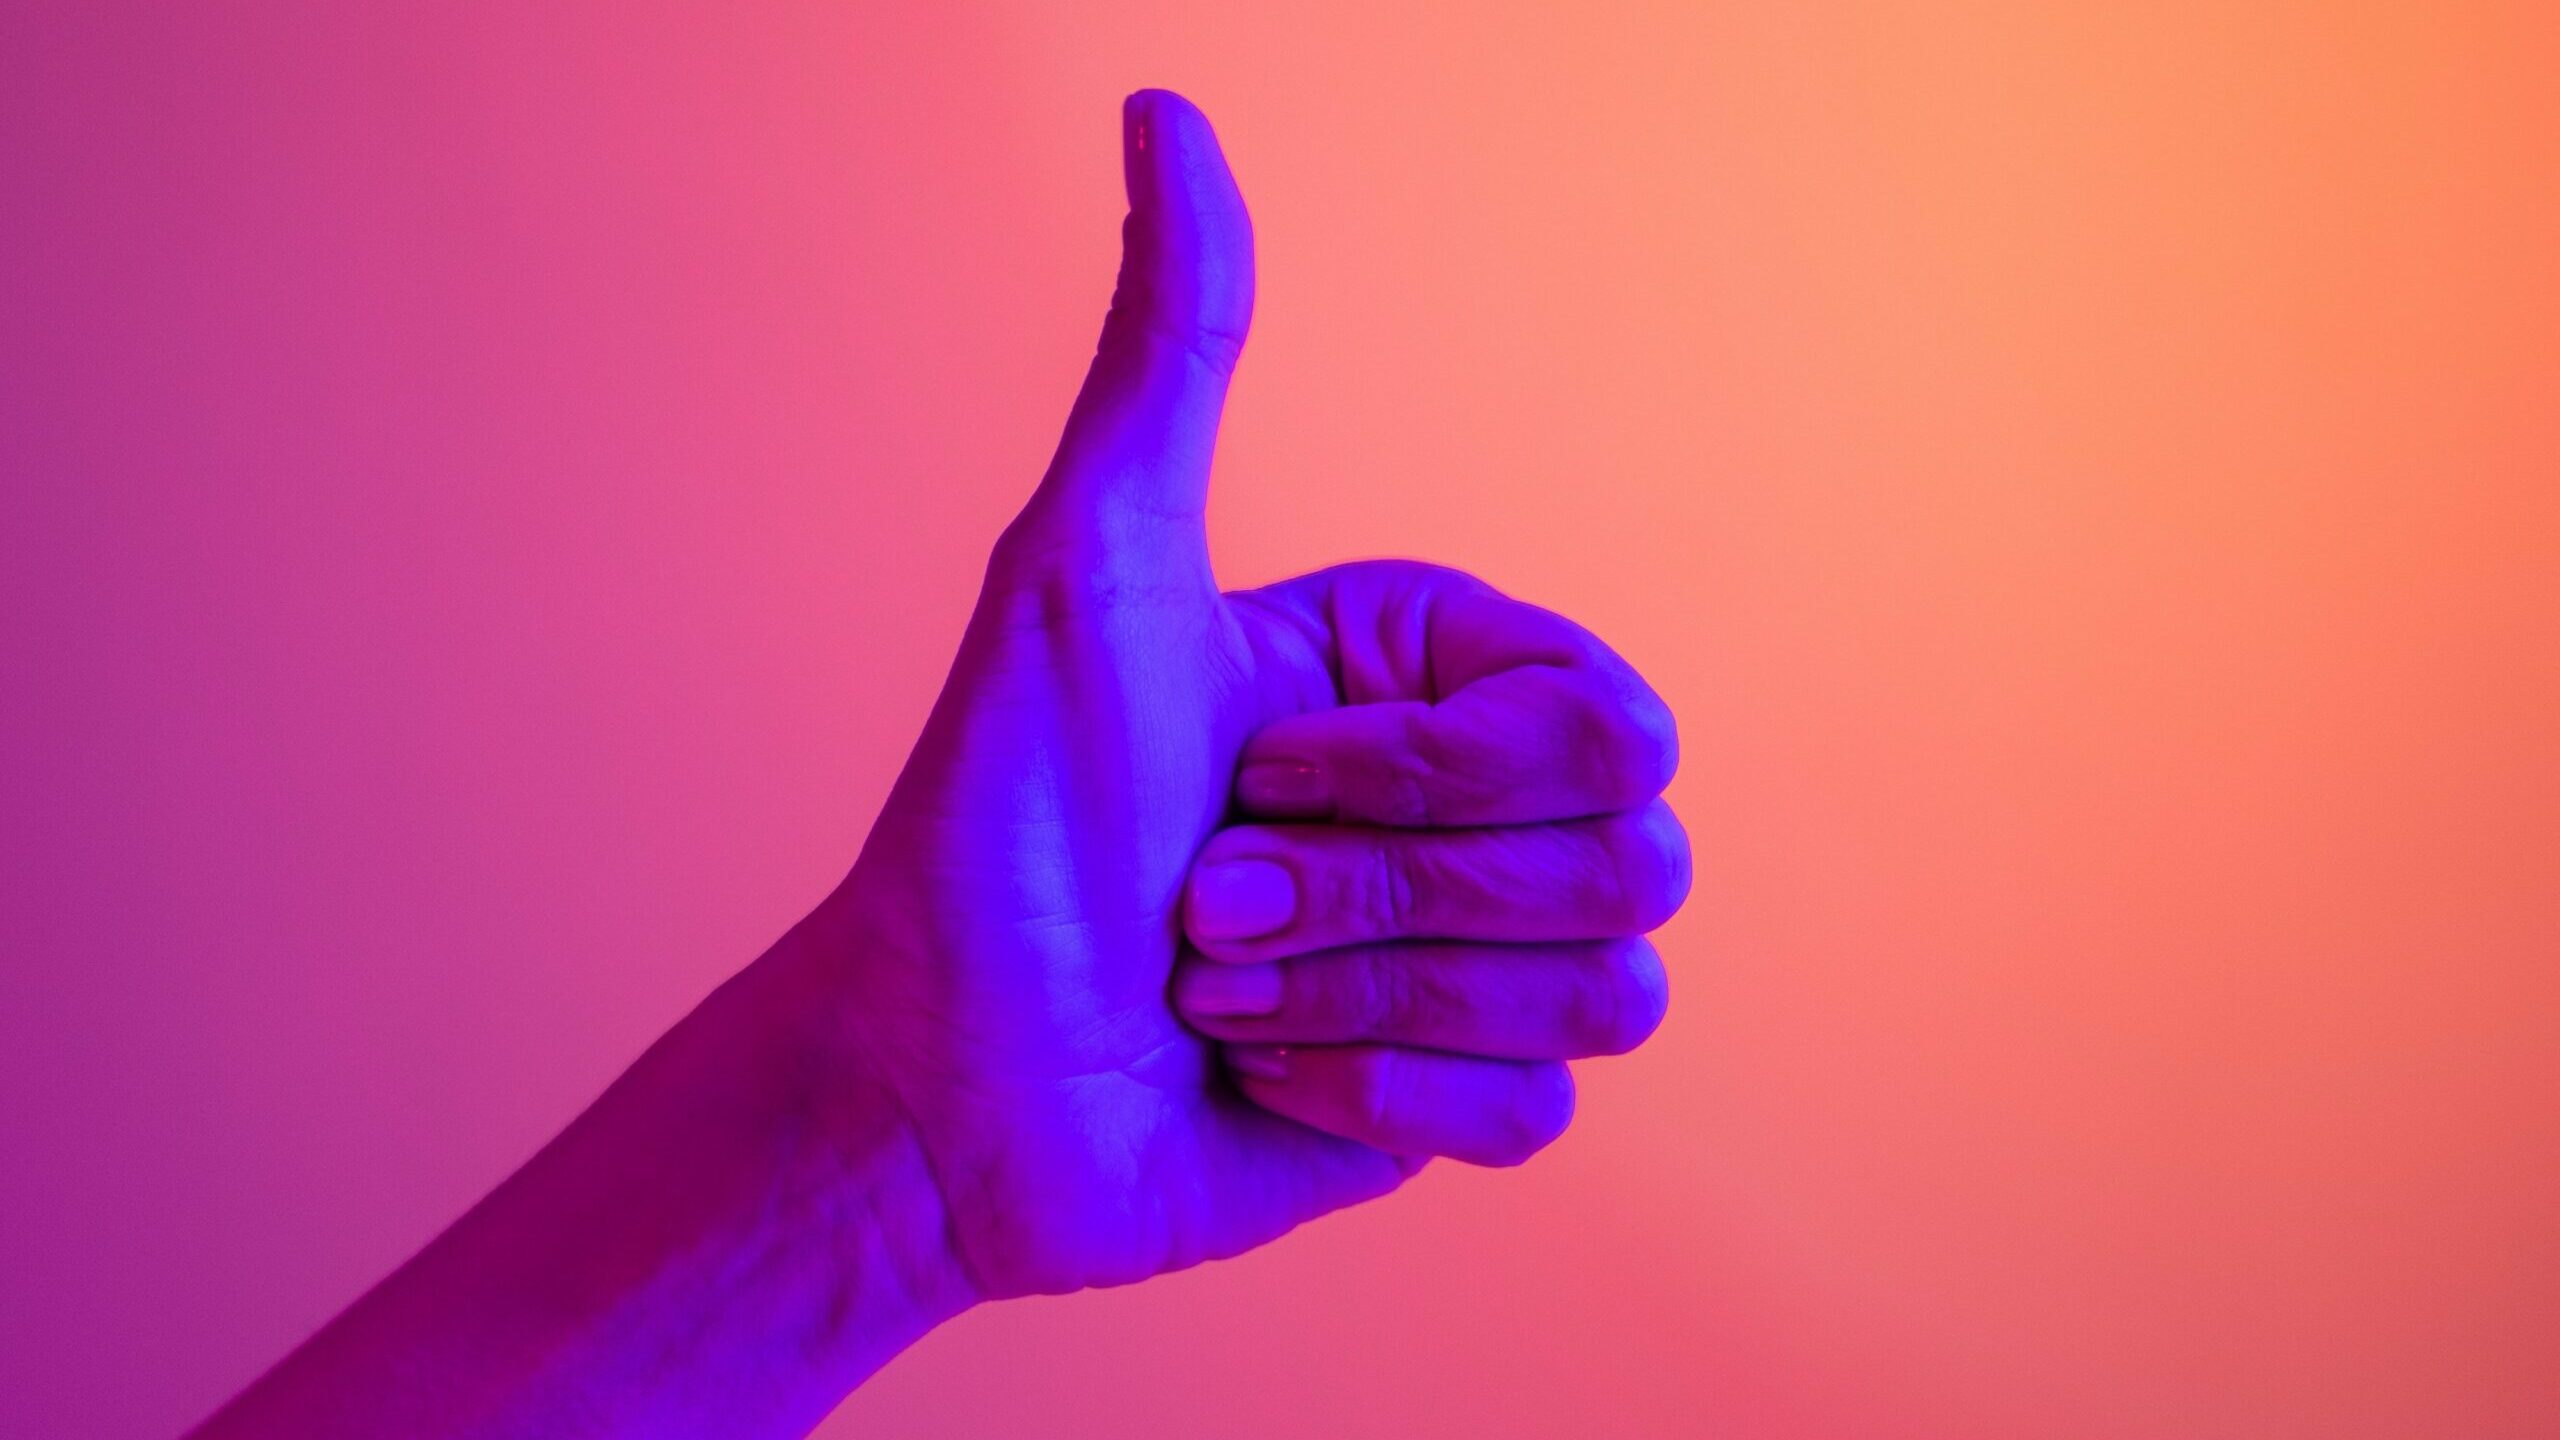 A hand lit bright purple against a pink and orange background, showing the thumbs up sign.